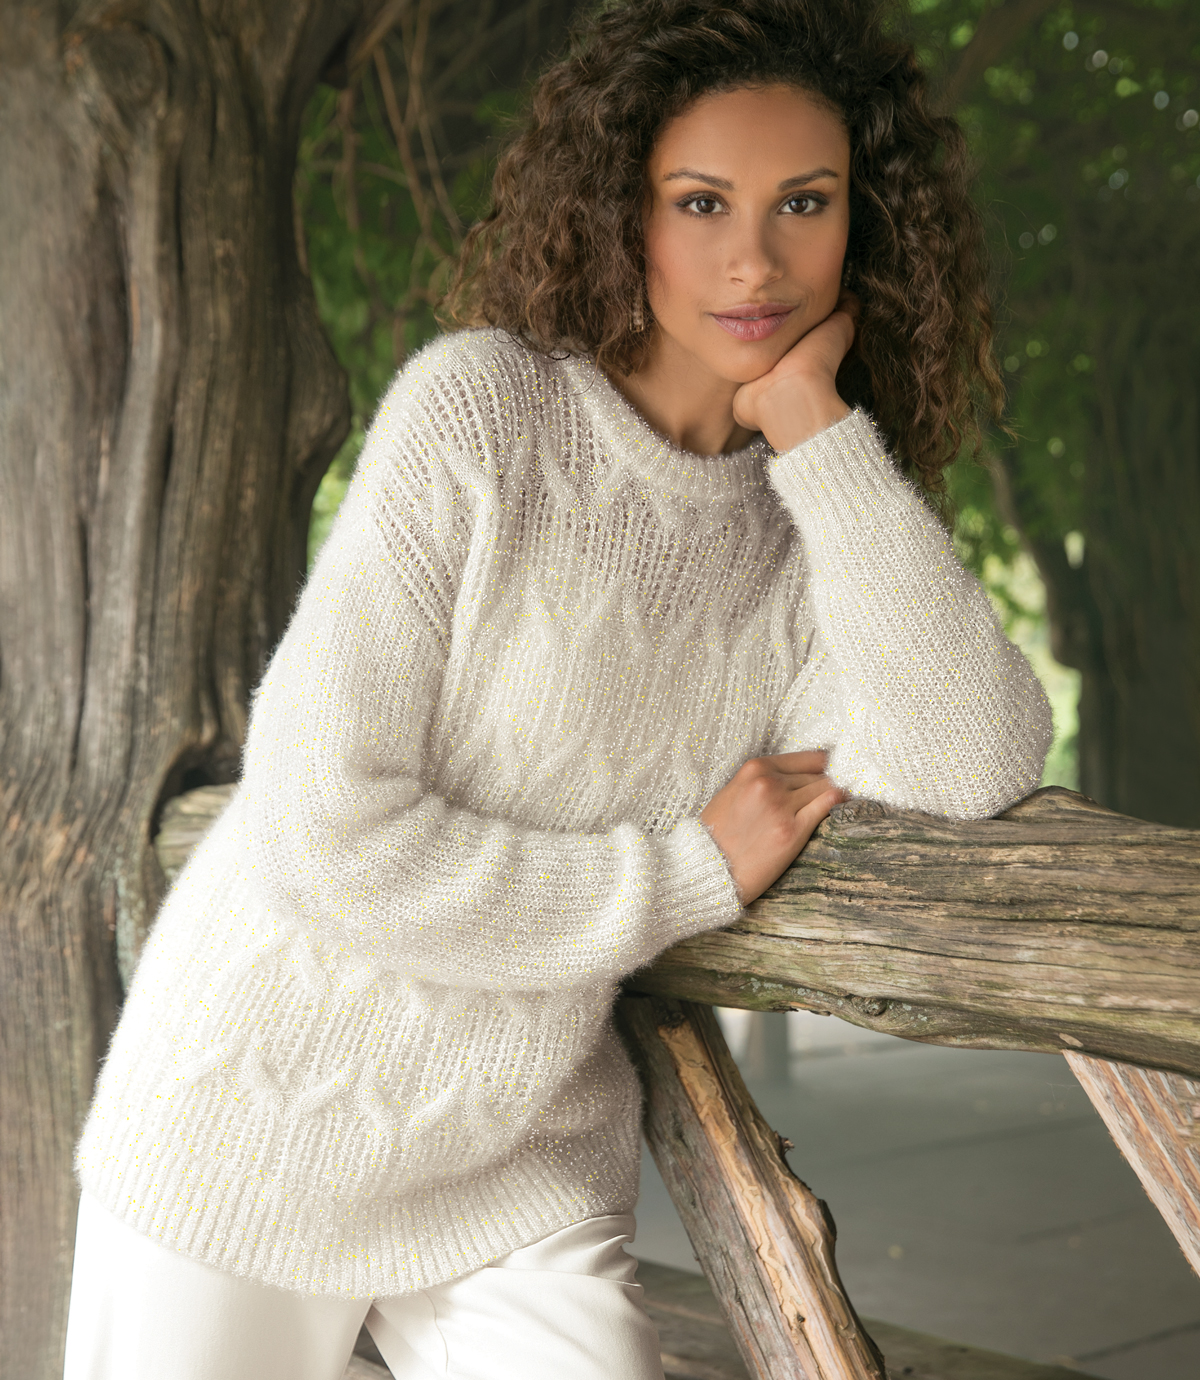 Woman wearing white sweater and white pants.